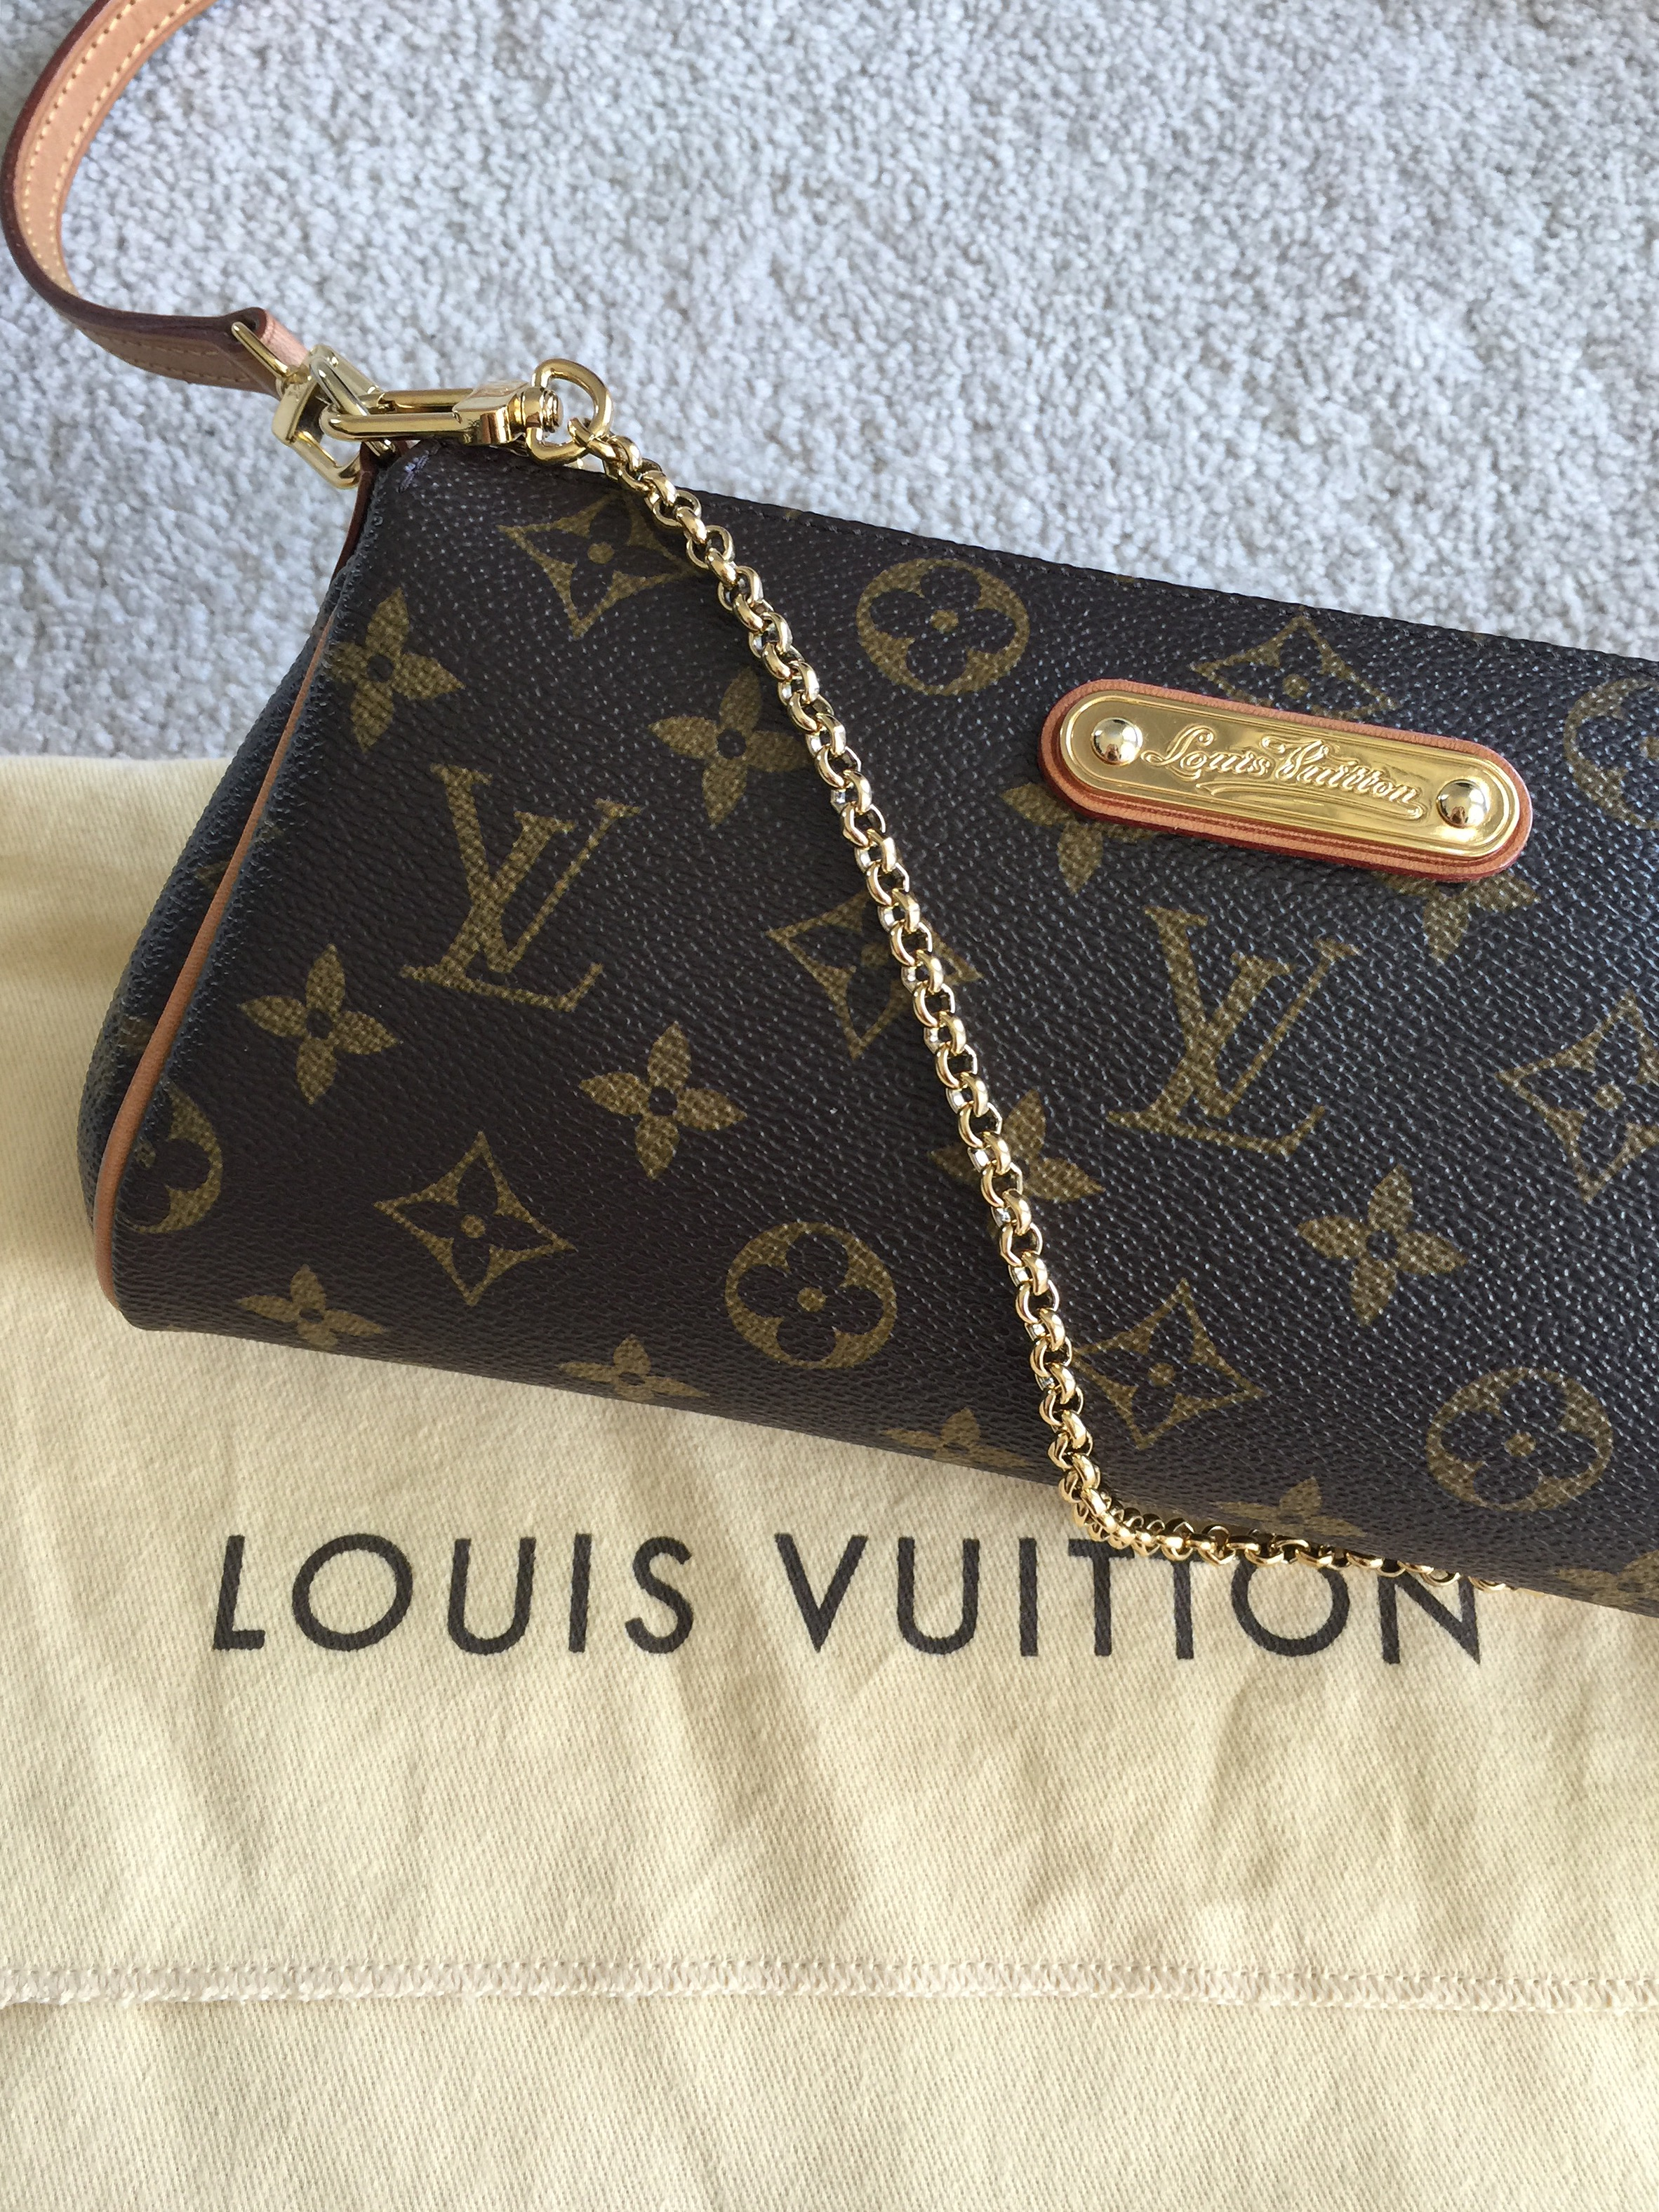 d4584e640e5d Louis Vuitton is a highly renowned fashion house known for creating some of  the most popular and sought after bags in the fashion industry.